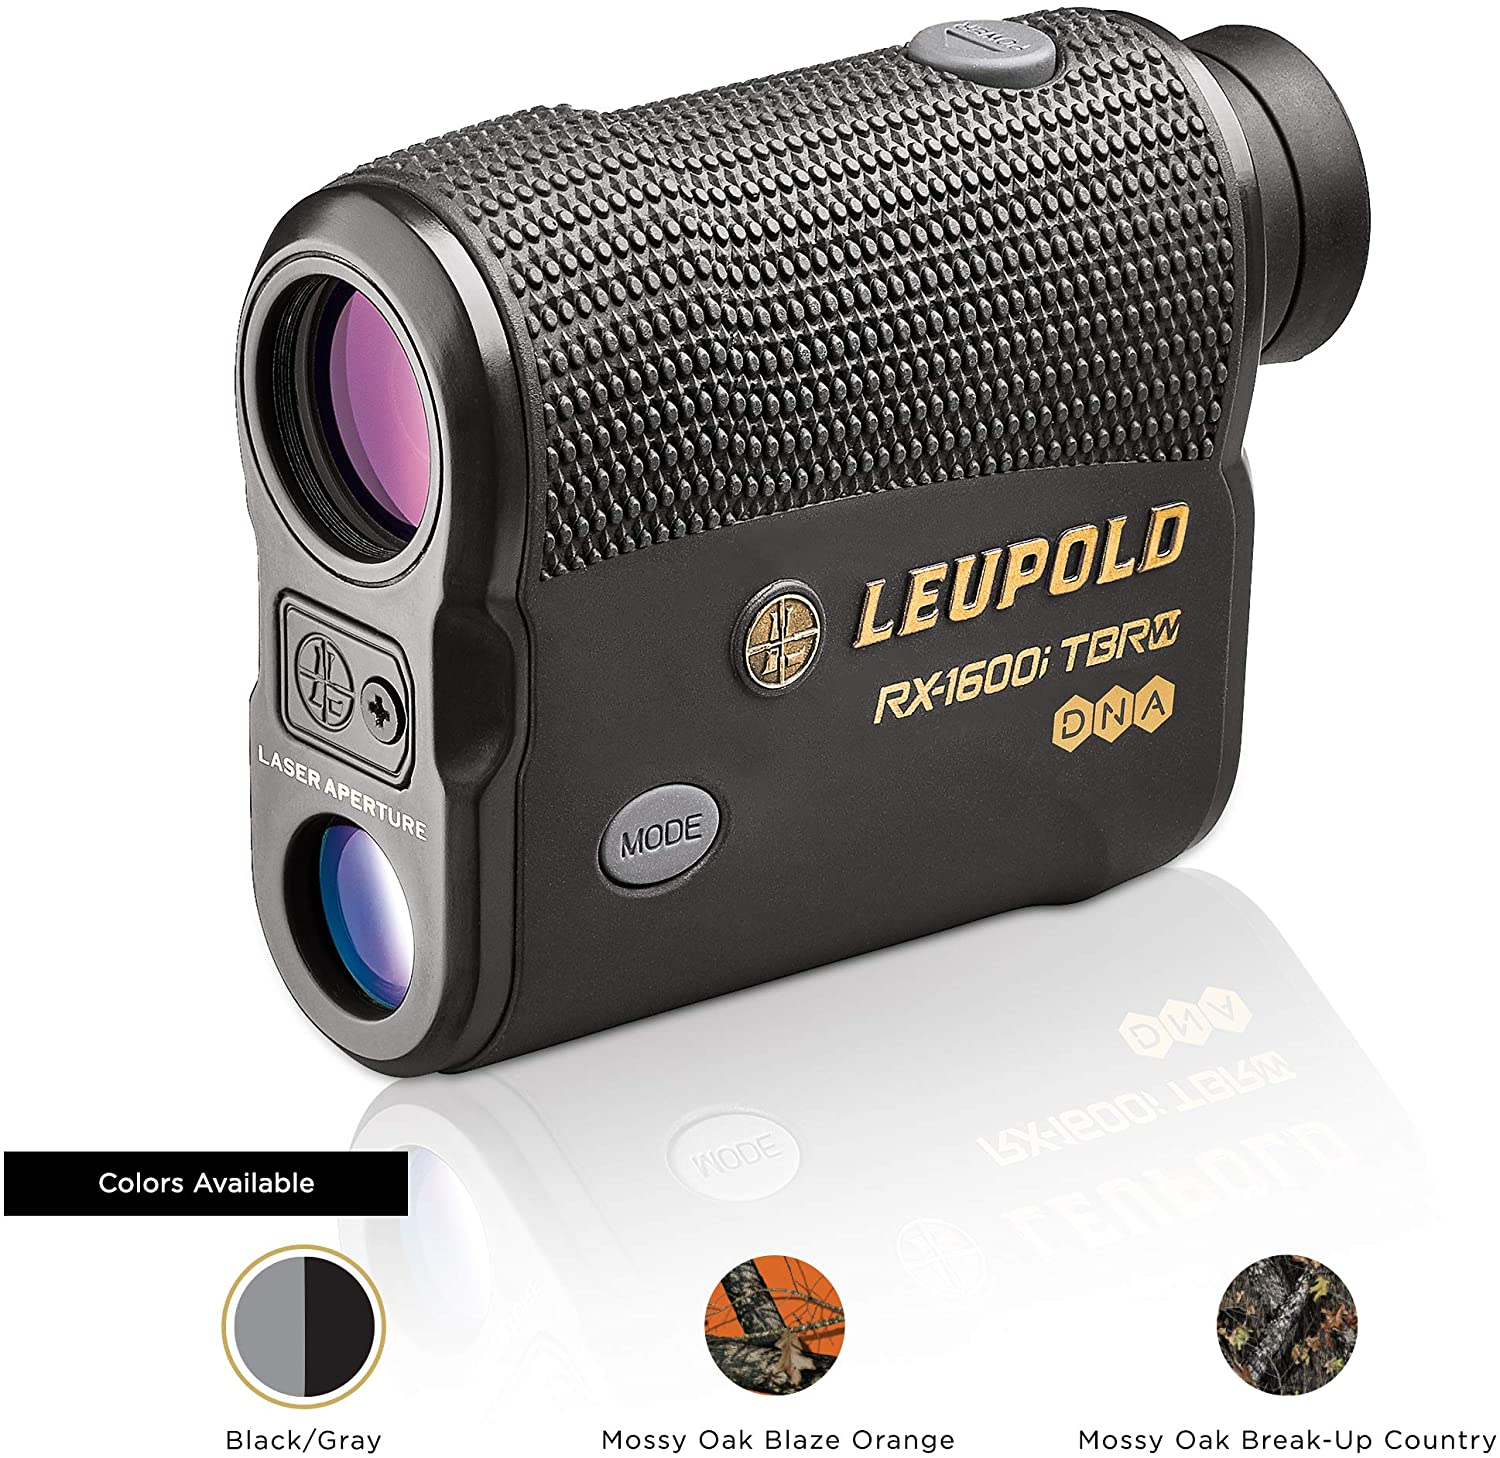 Photo of a rangefinder with bumpy outer cover,